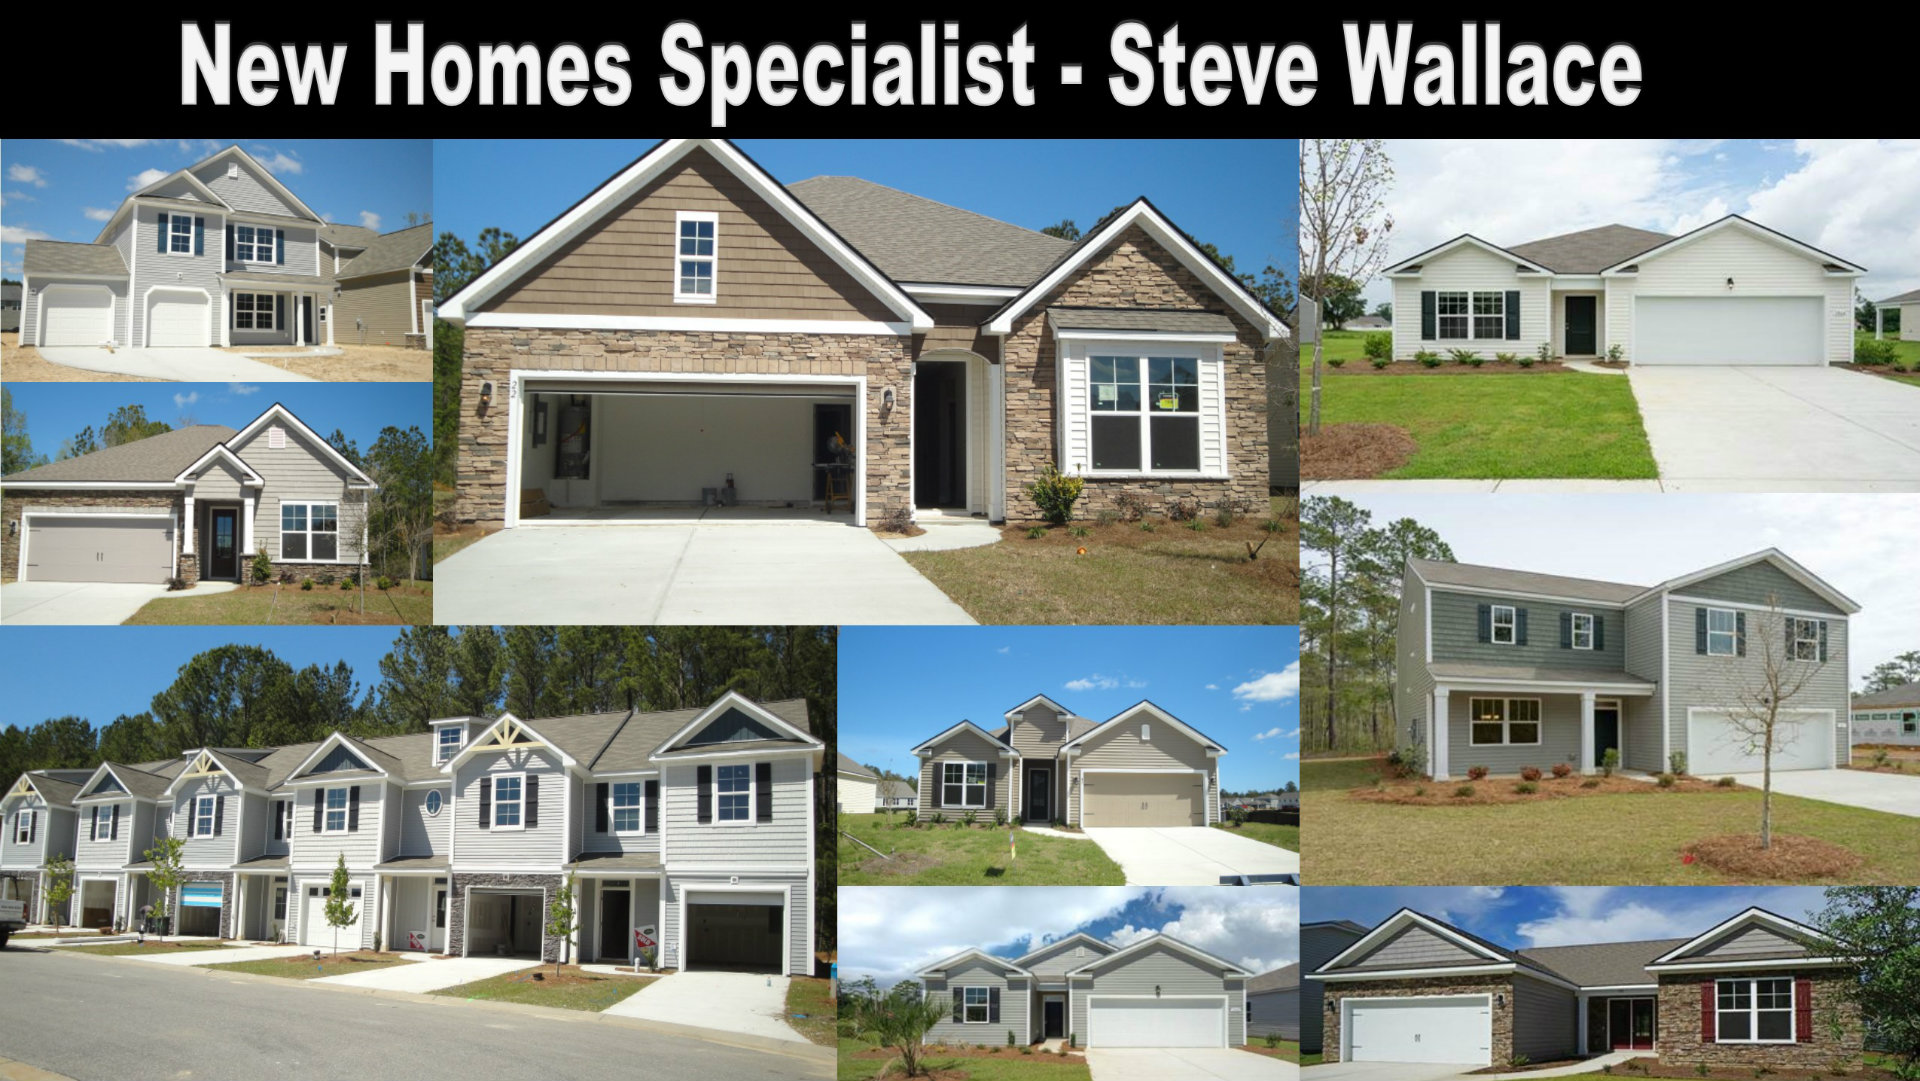 New Homes Specialist, Steve Wallace, Bluffton, SC, Build a Home